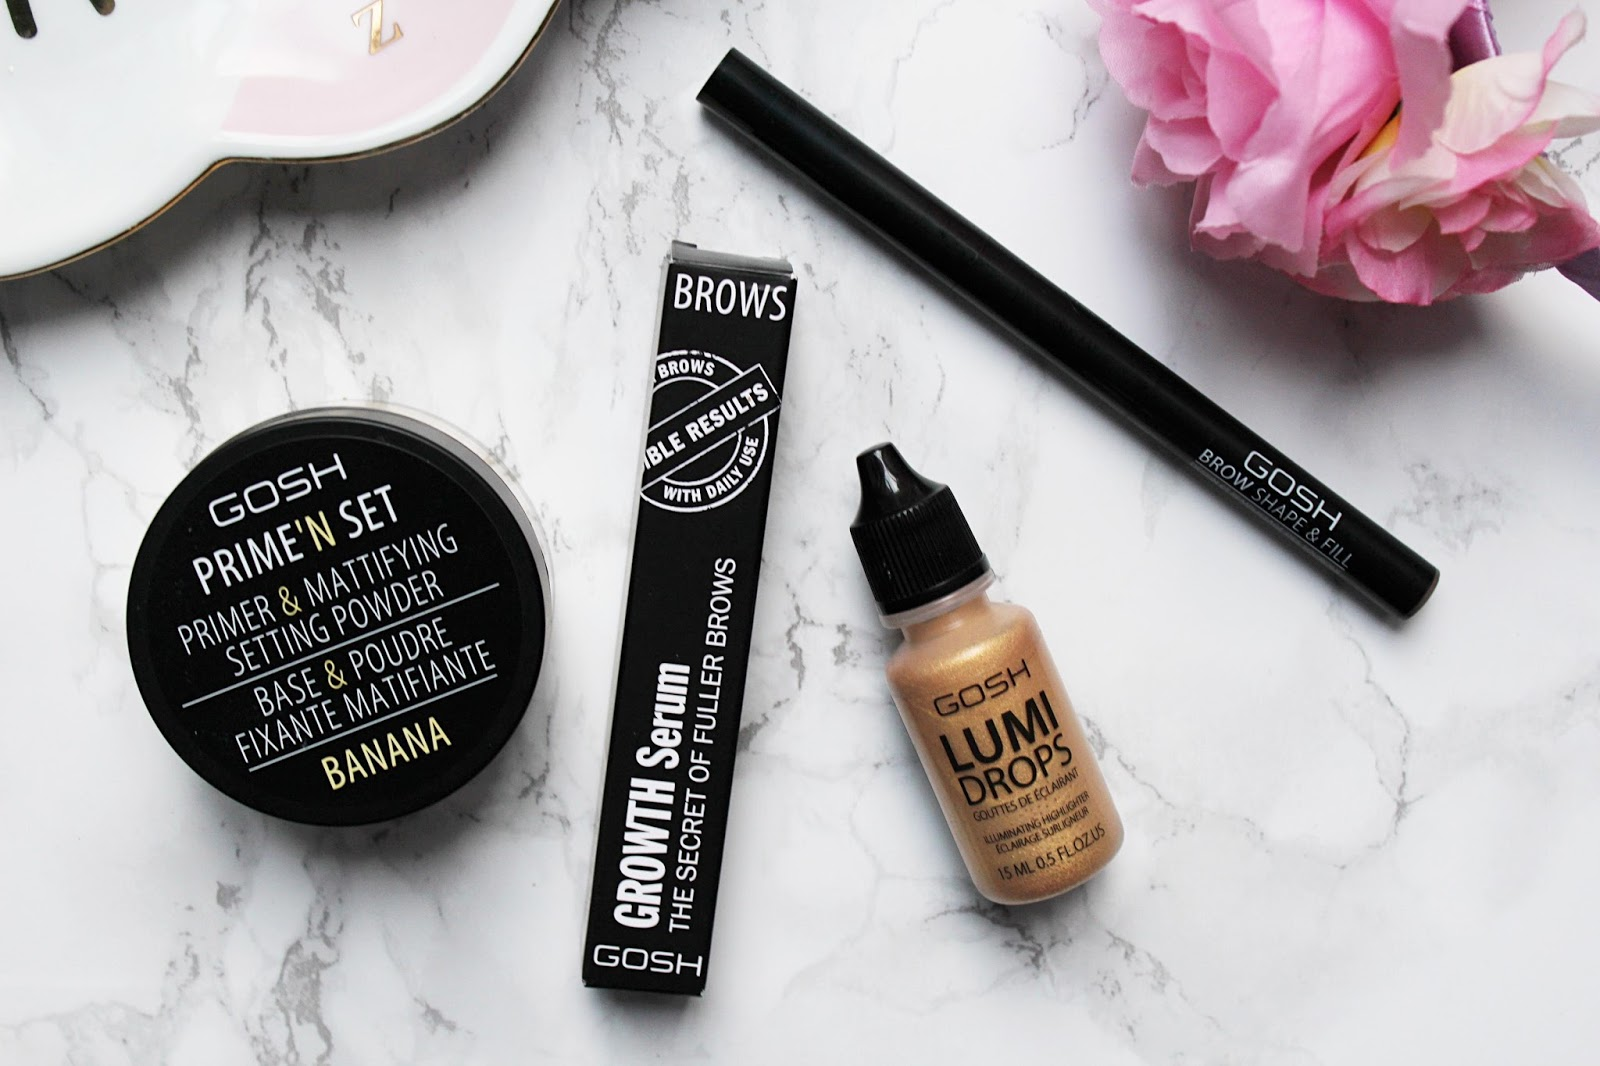 GOSH Makeup Must Haves